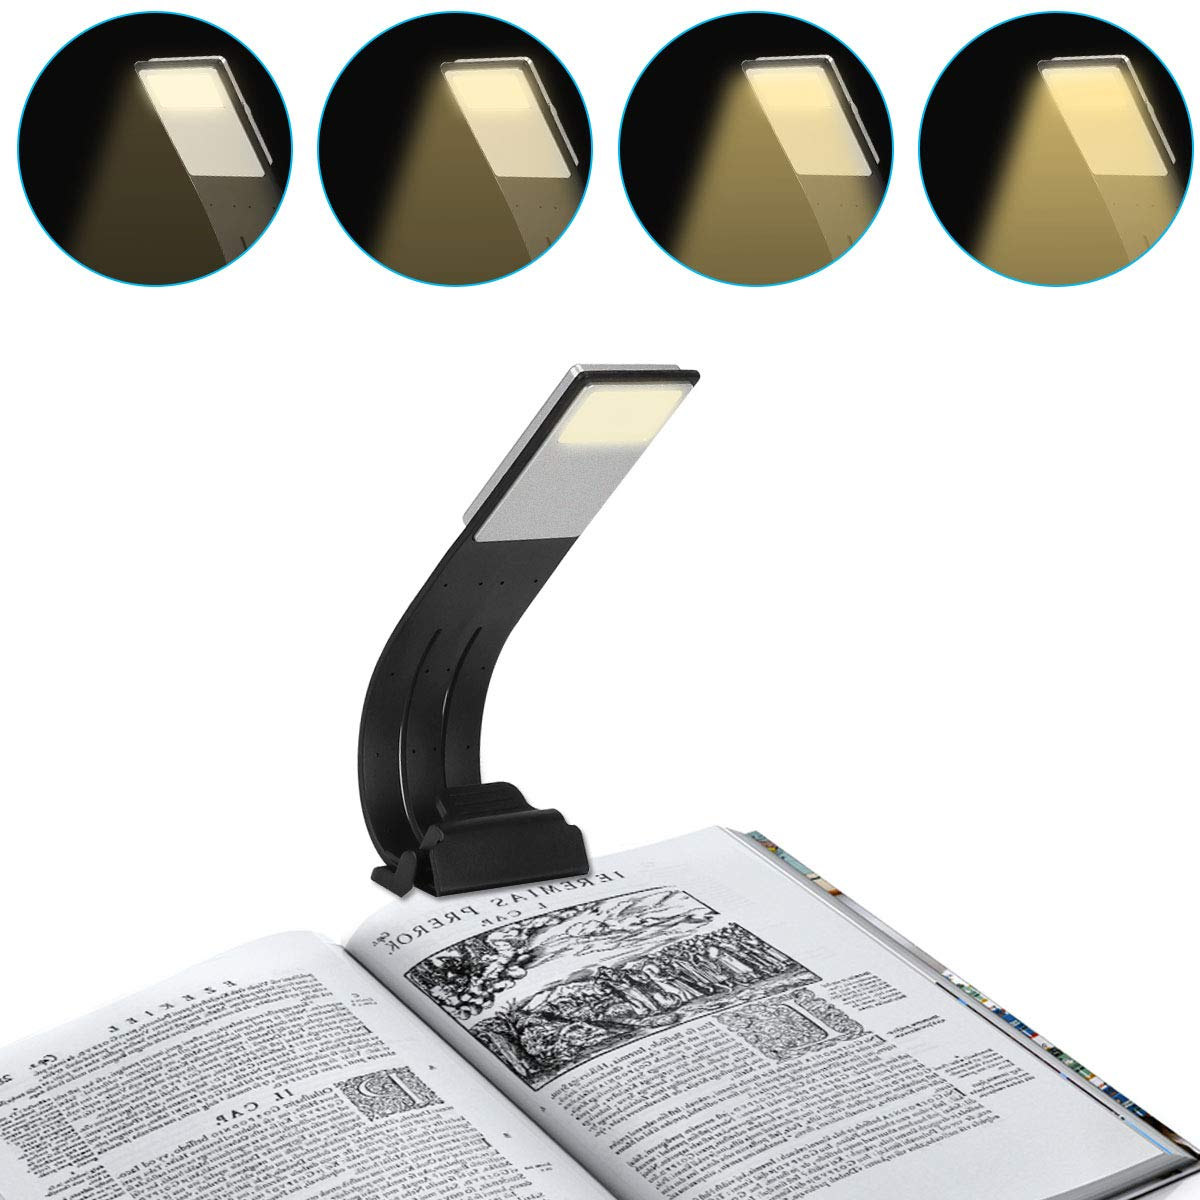 Aibesser Book Light Clip Reading Light with USB Rechargeable 4 Level Dimmable Flexible for Bed Reading